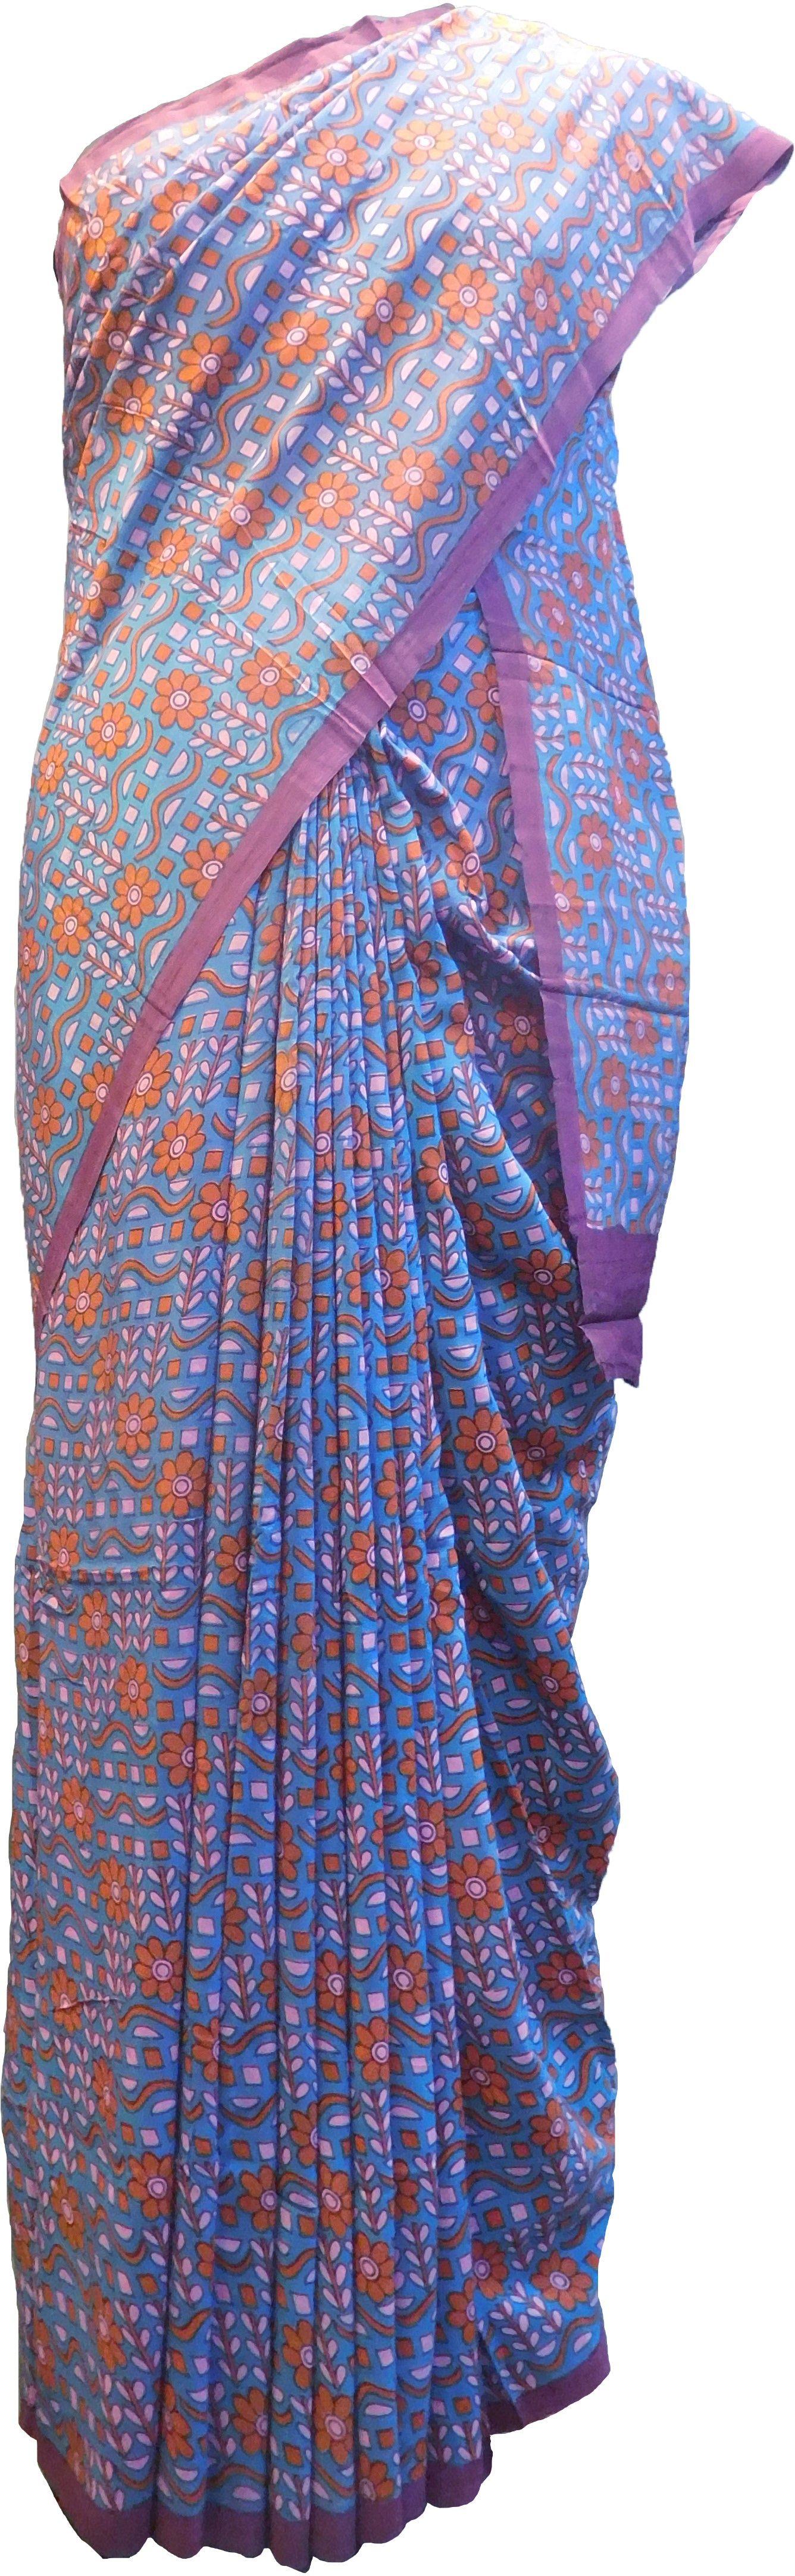 SMSAREE Multi Color Designer Wedding Partywear Pure Crepe Hand Brush Print Hand Embroidery Work Bridal Saree Sari With Blouse Piece RP376